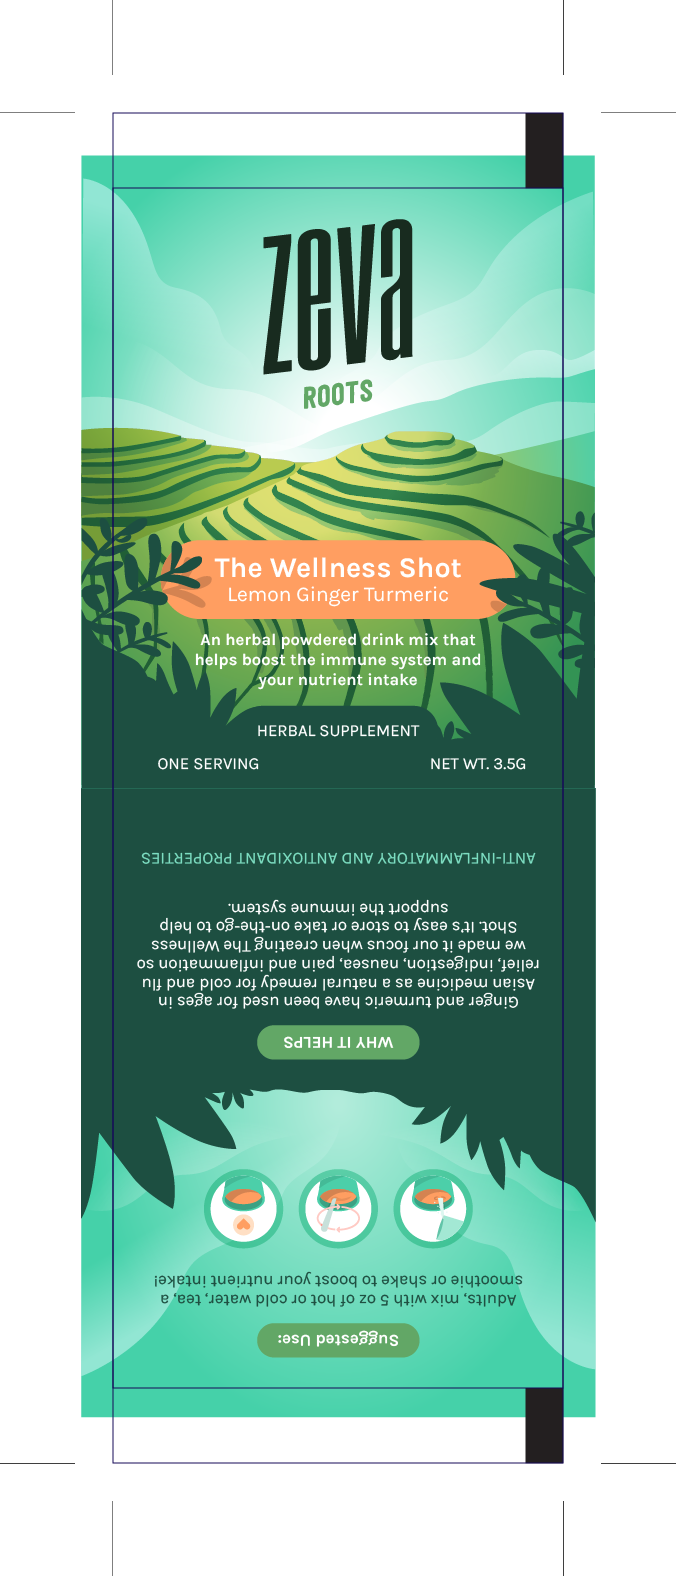 Packaging for a natural dietary supplement meant to boost the immune system